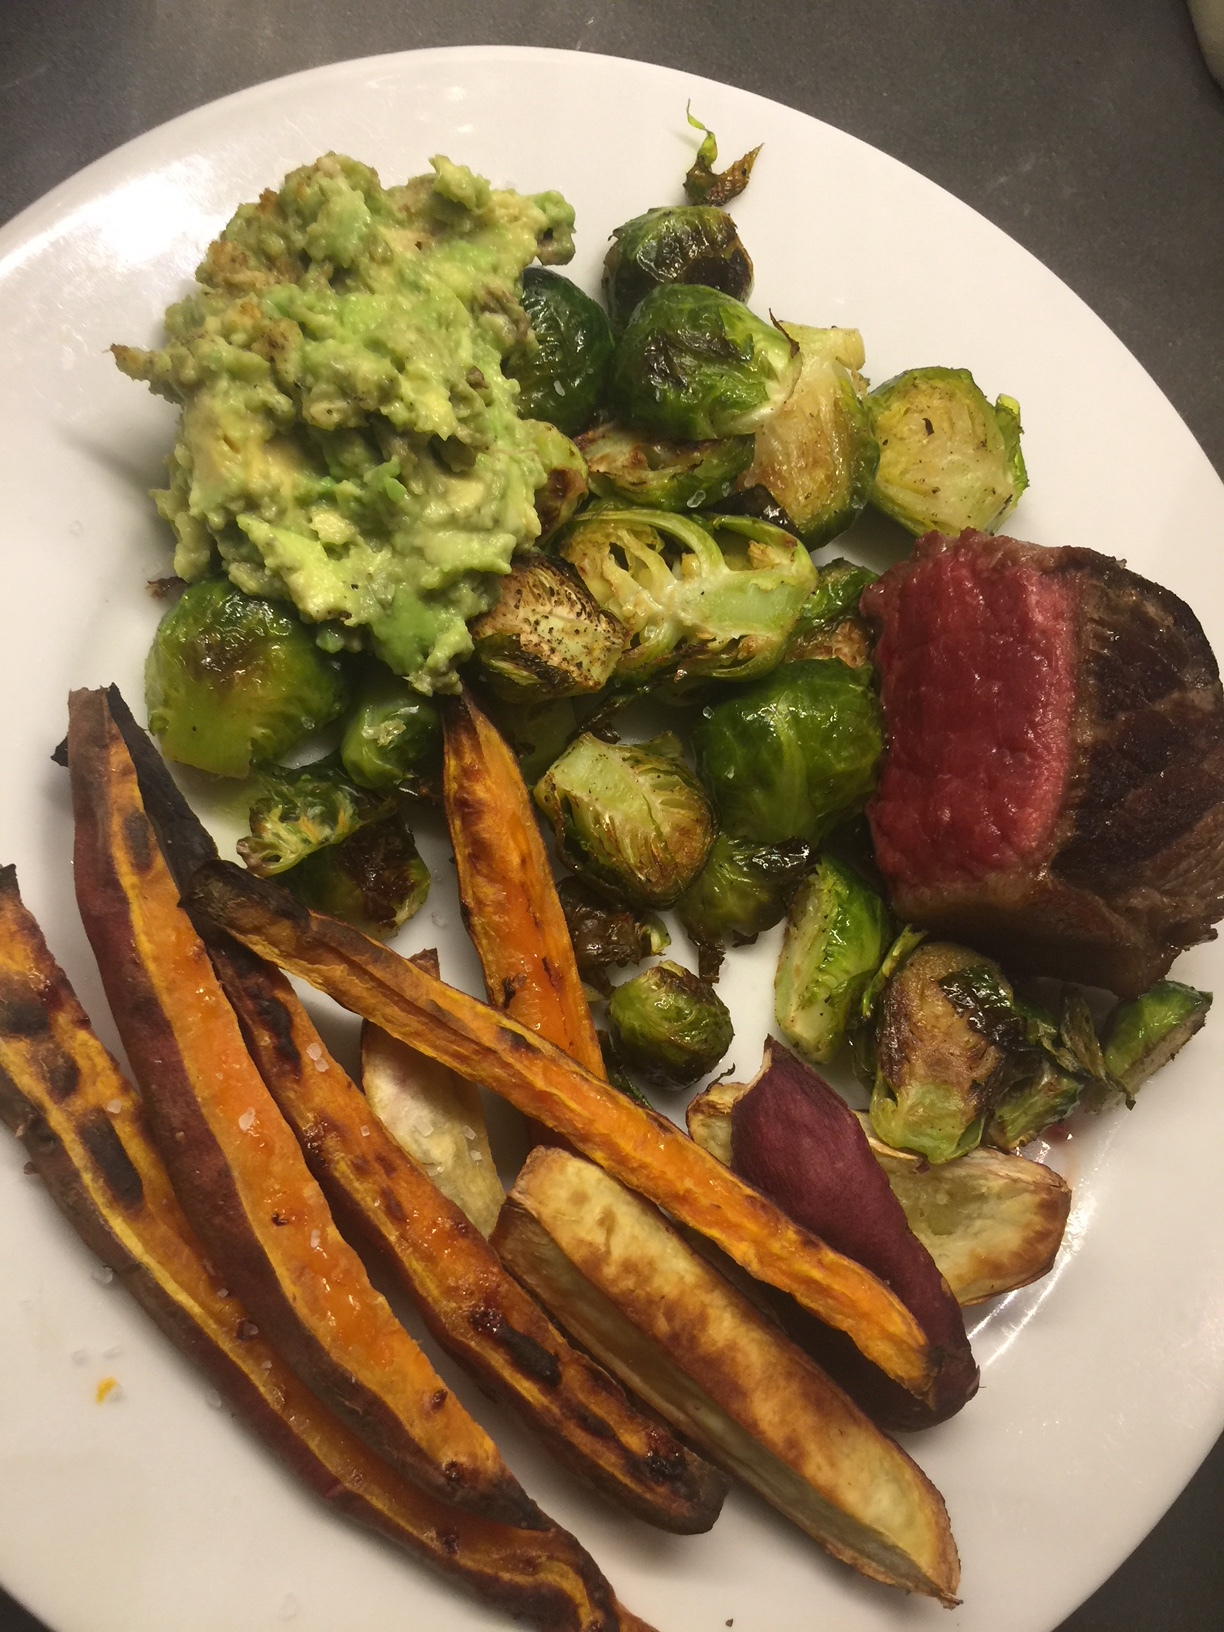 A combo of OG and Japanese sweet potato fries, with brussels, avocado, and  grass-fed beef